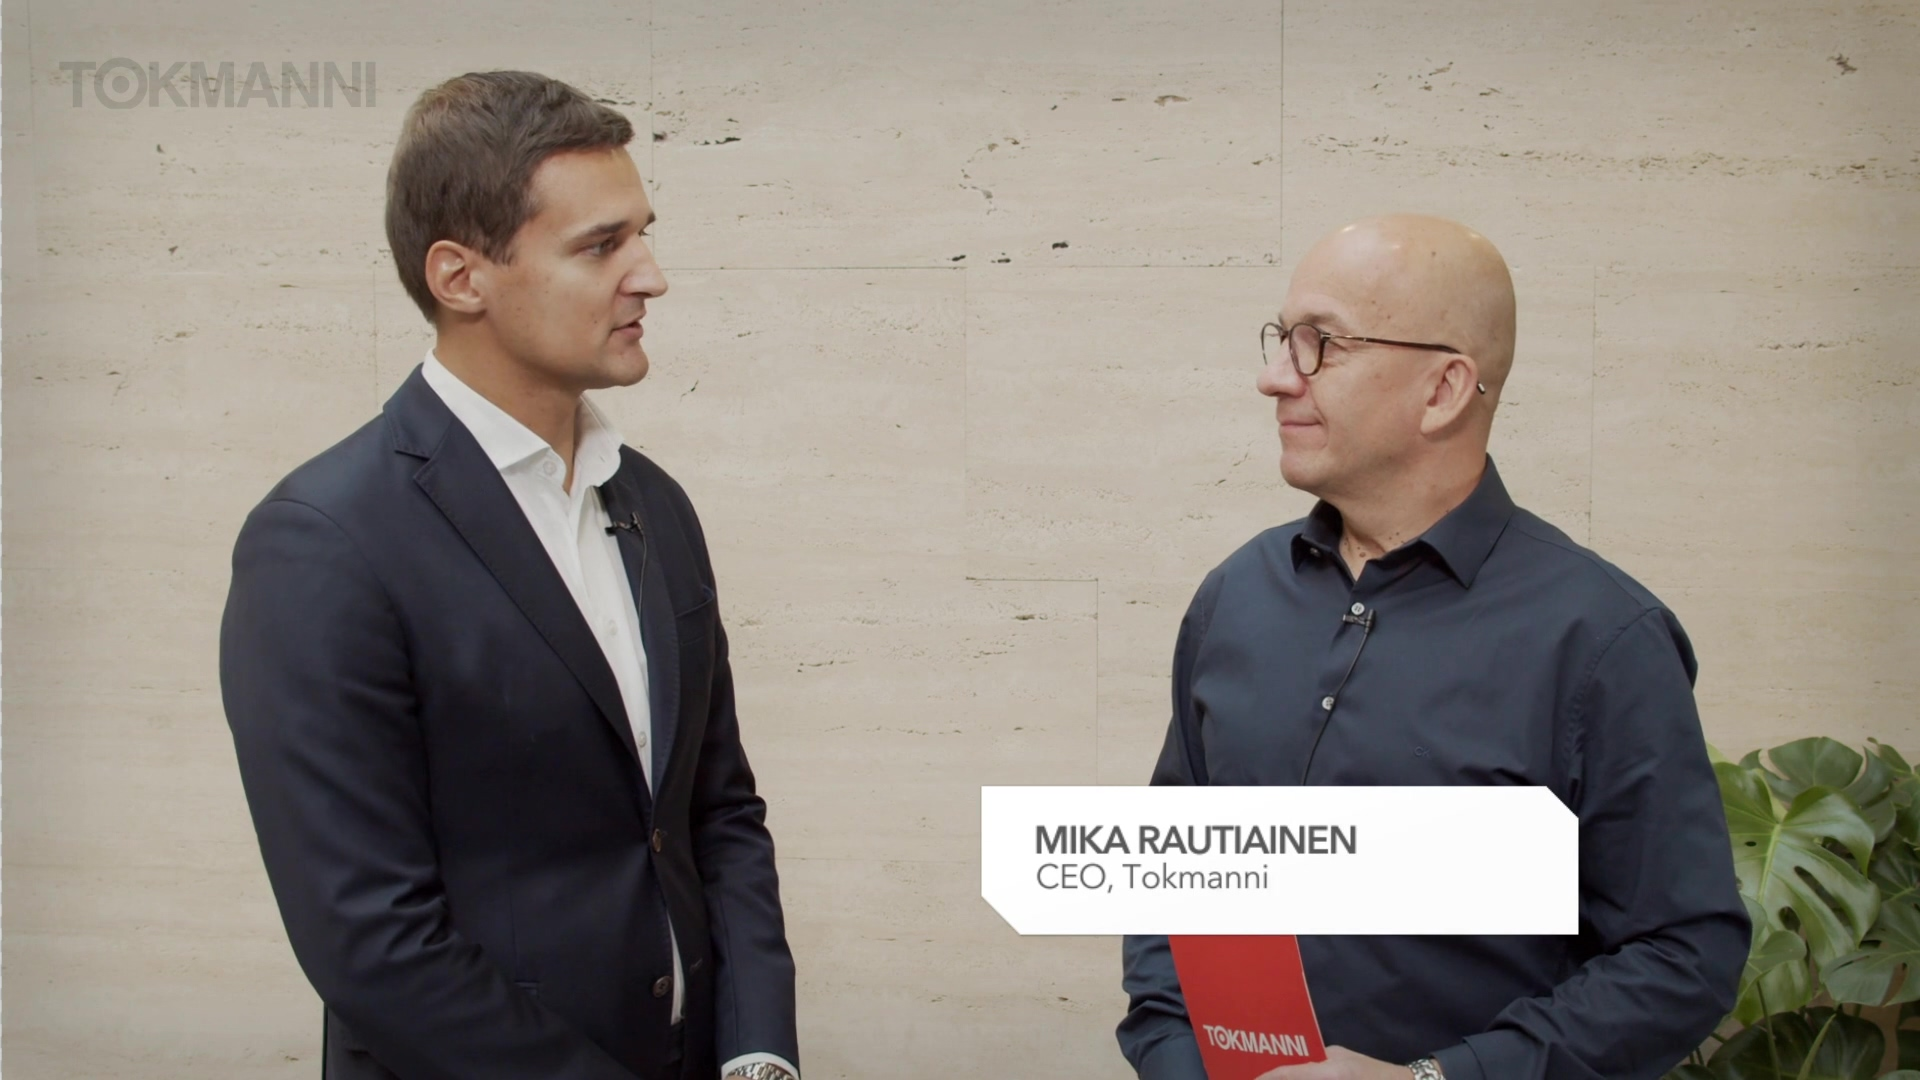 Tokmanni Q319 interview with Mika Rautiainen